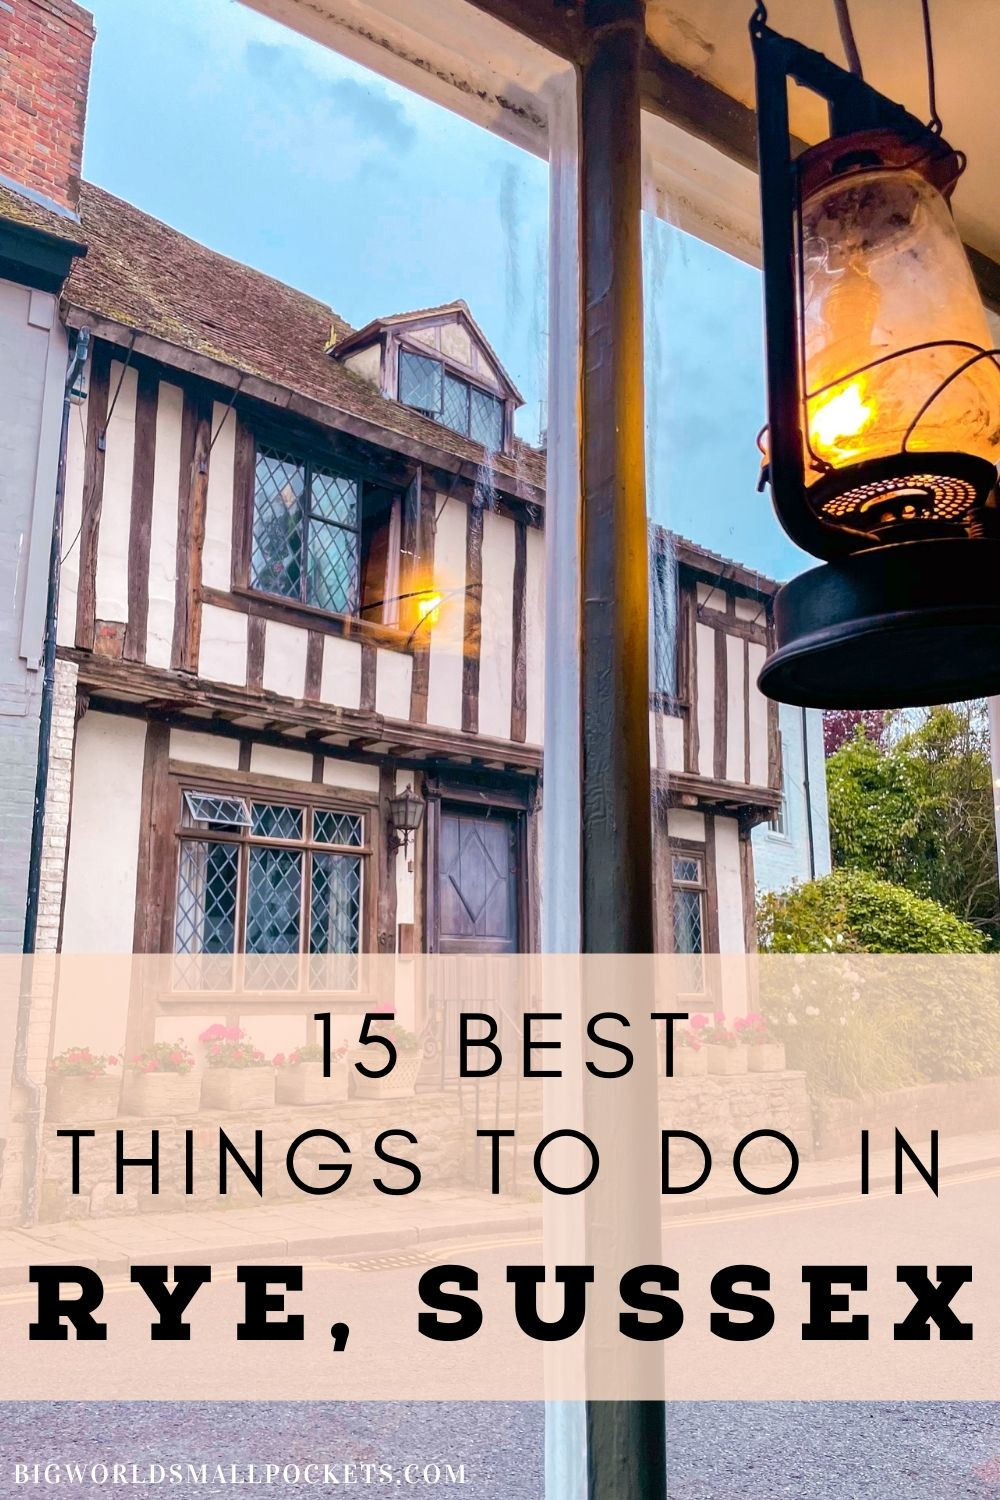 15 Best Things to Do in Rye, East Sussex